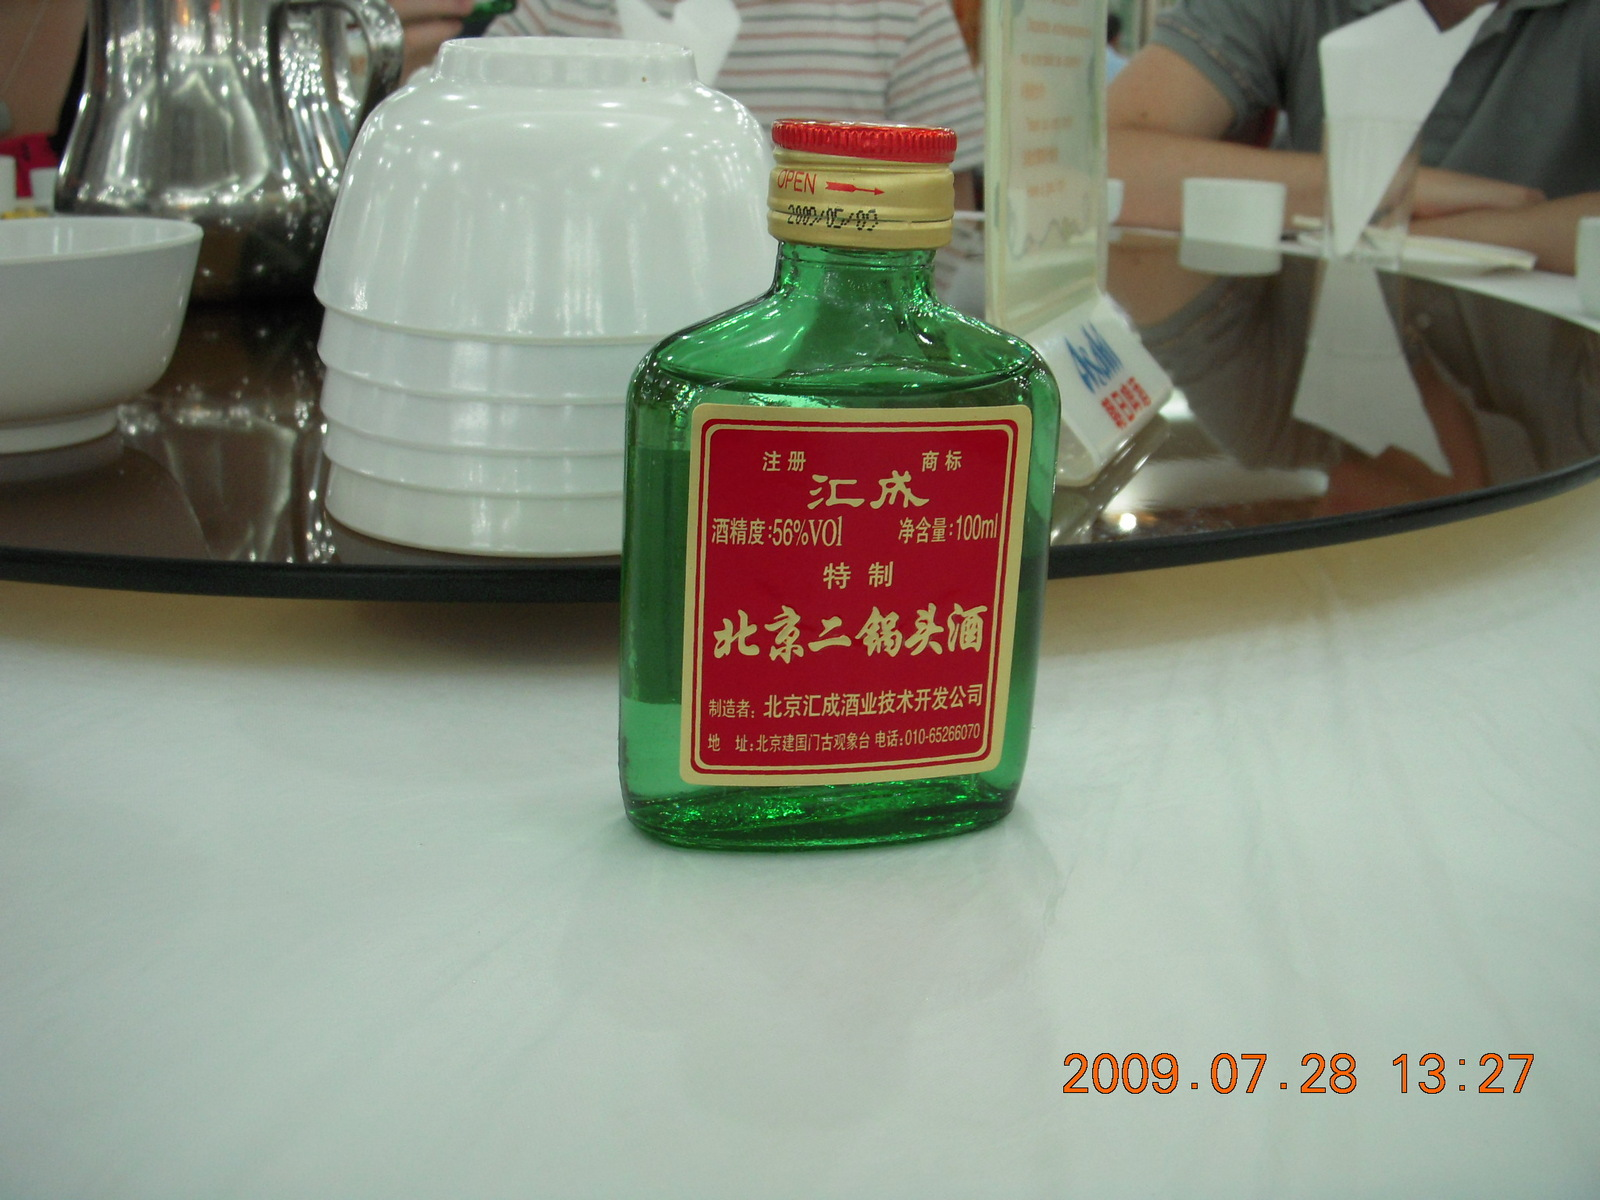 China eclipse - Beijing tour - local alcohol product